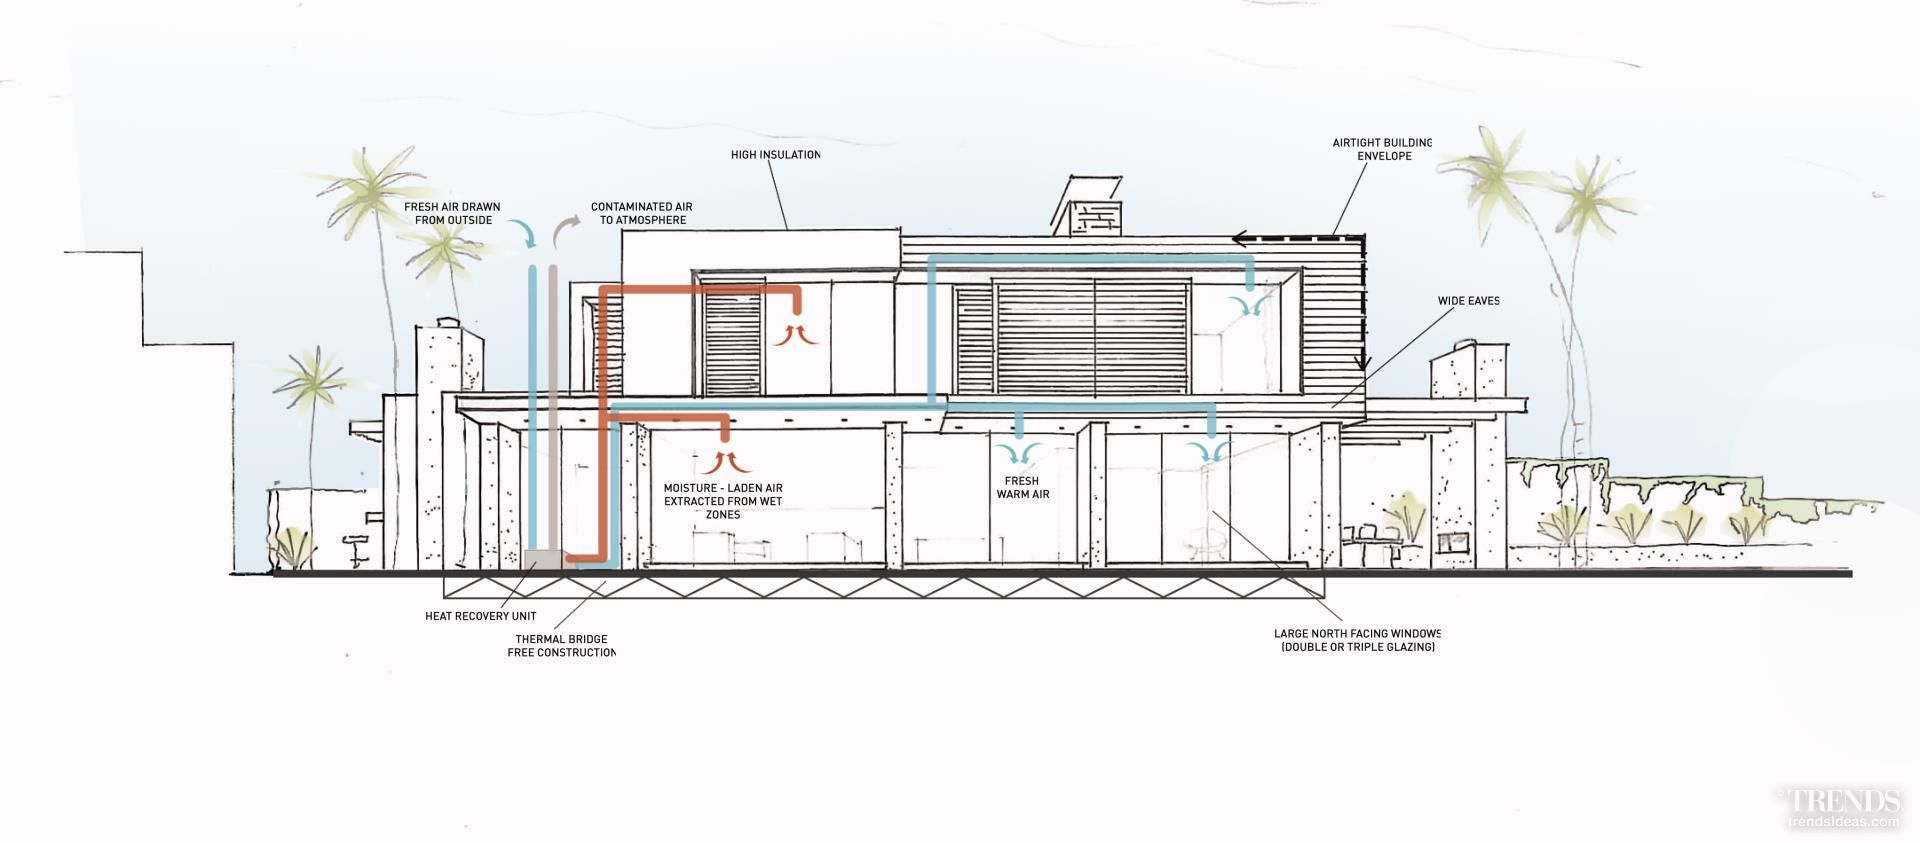 Airtight solution the first vertified passive house in